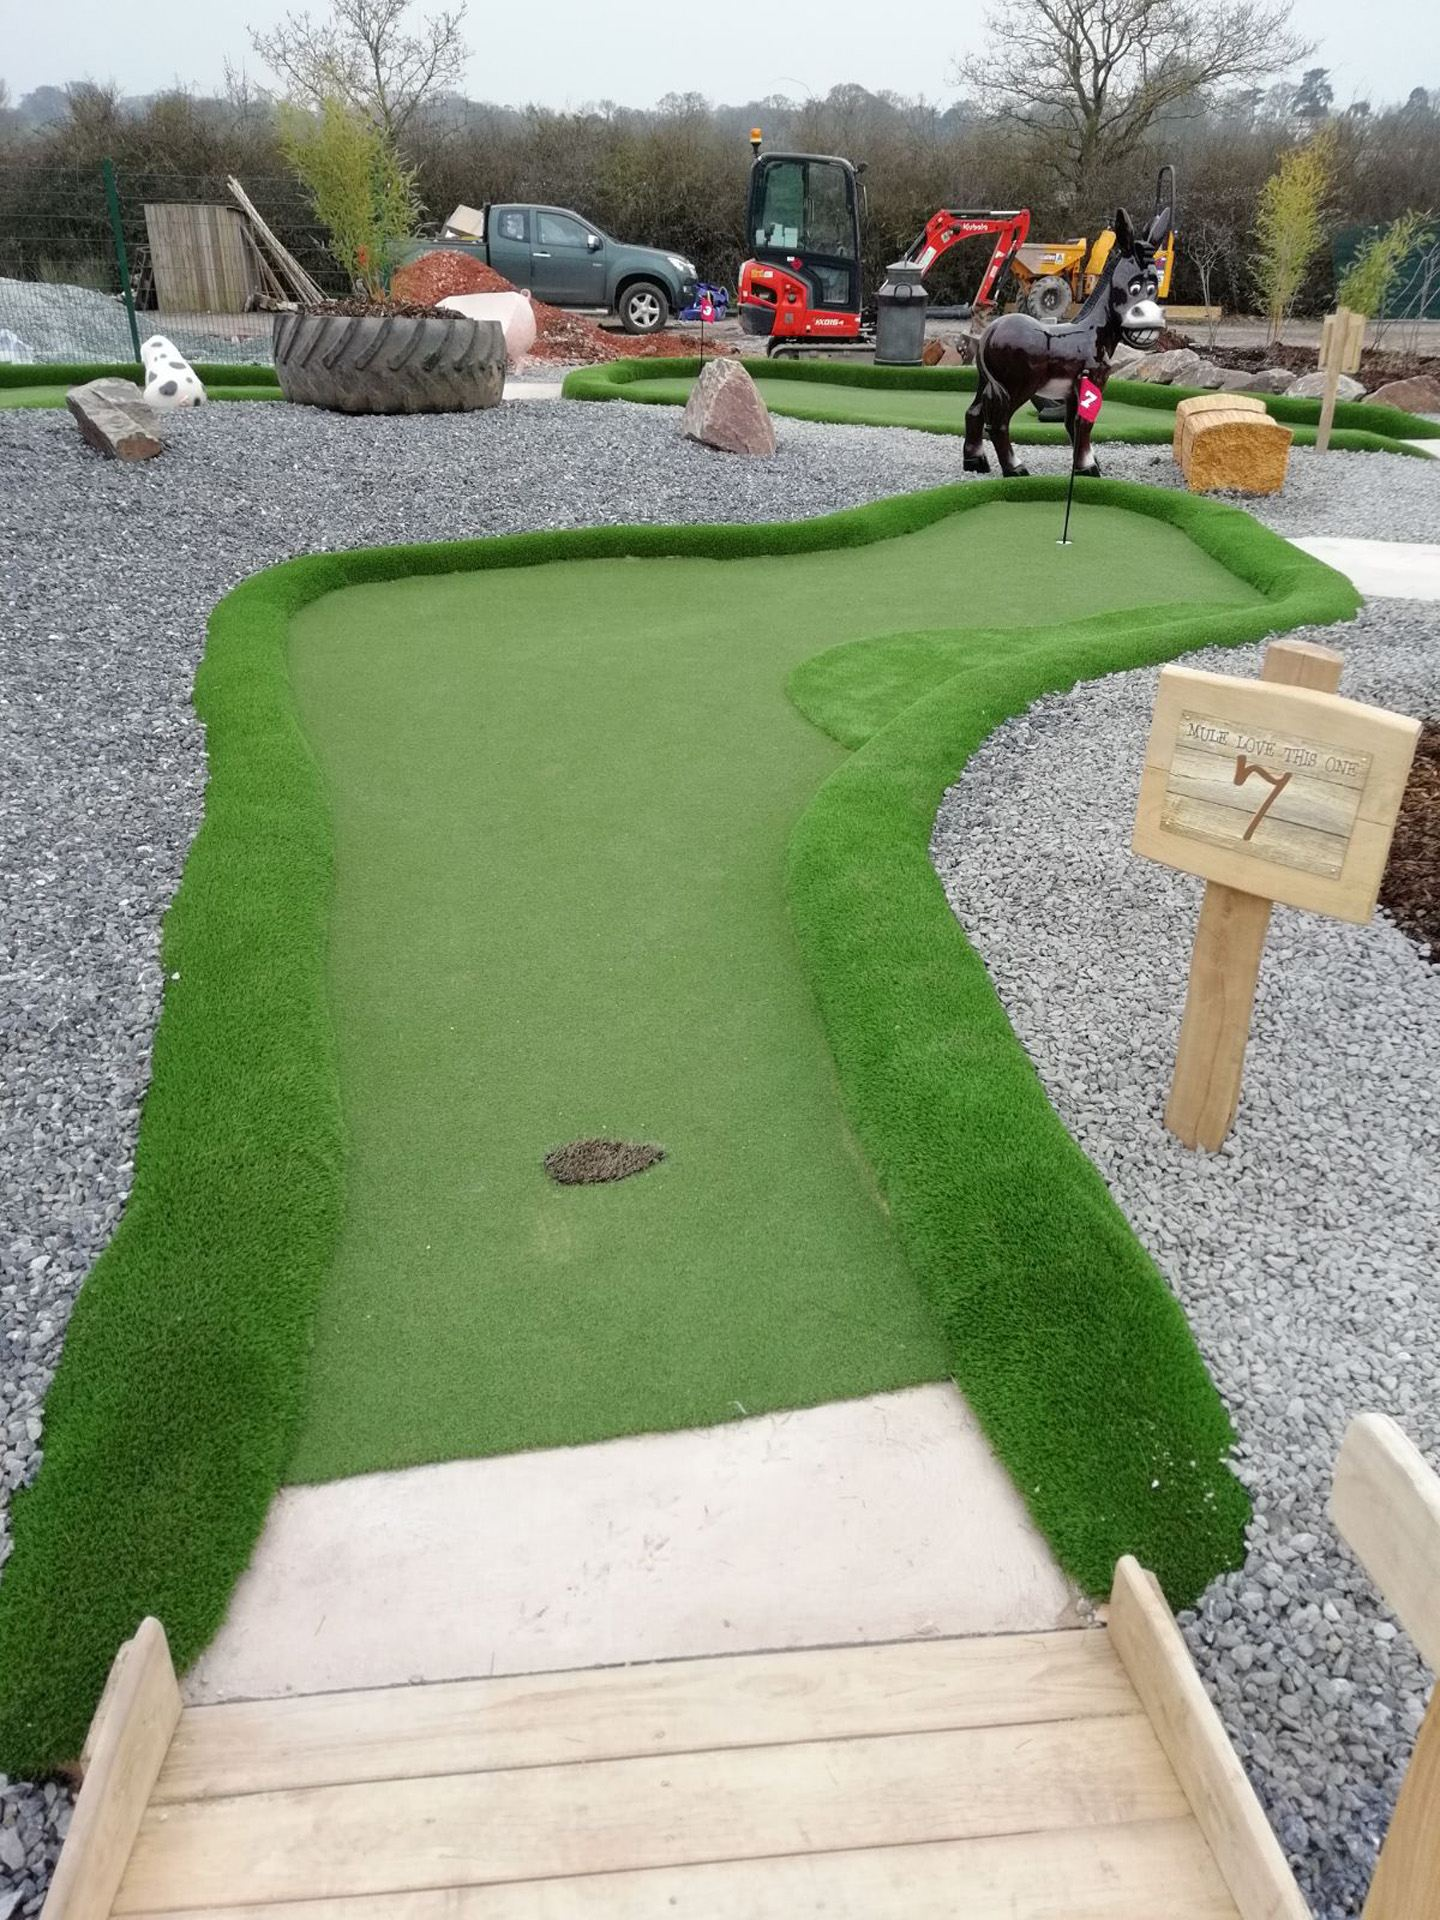 PPG - All aspects of Adventure Golf